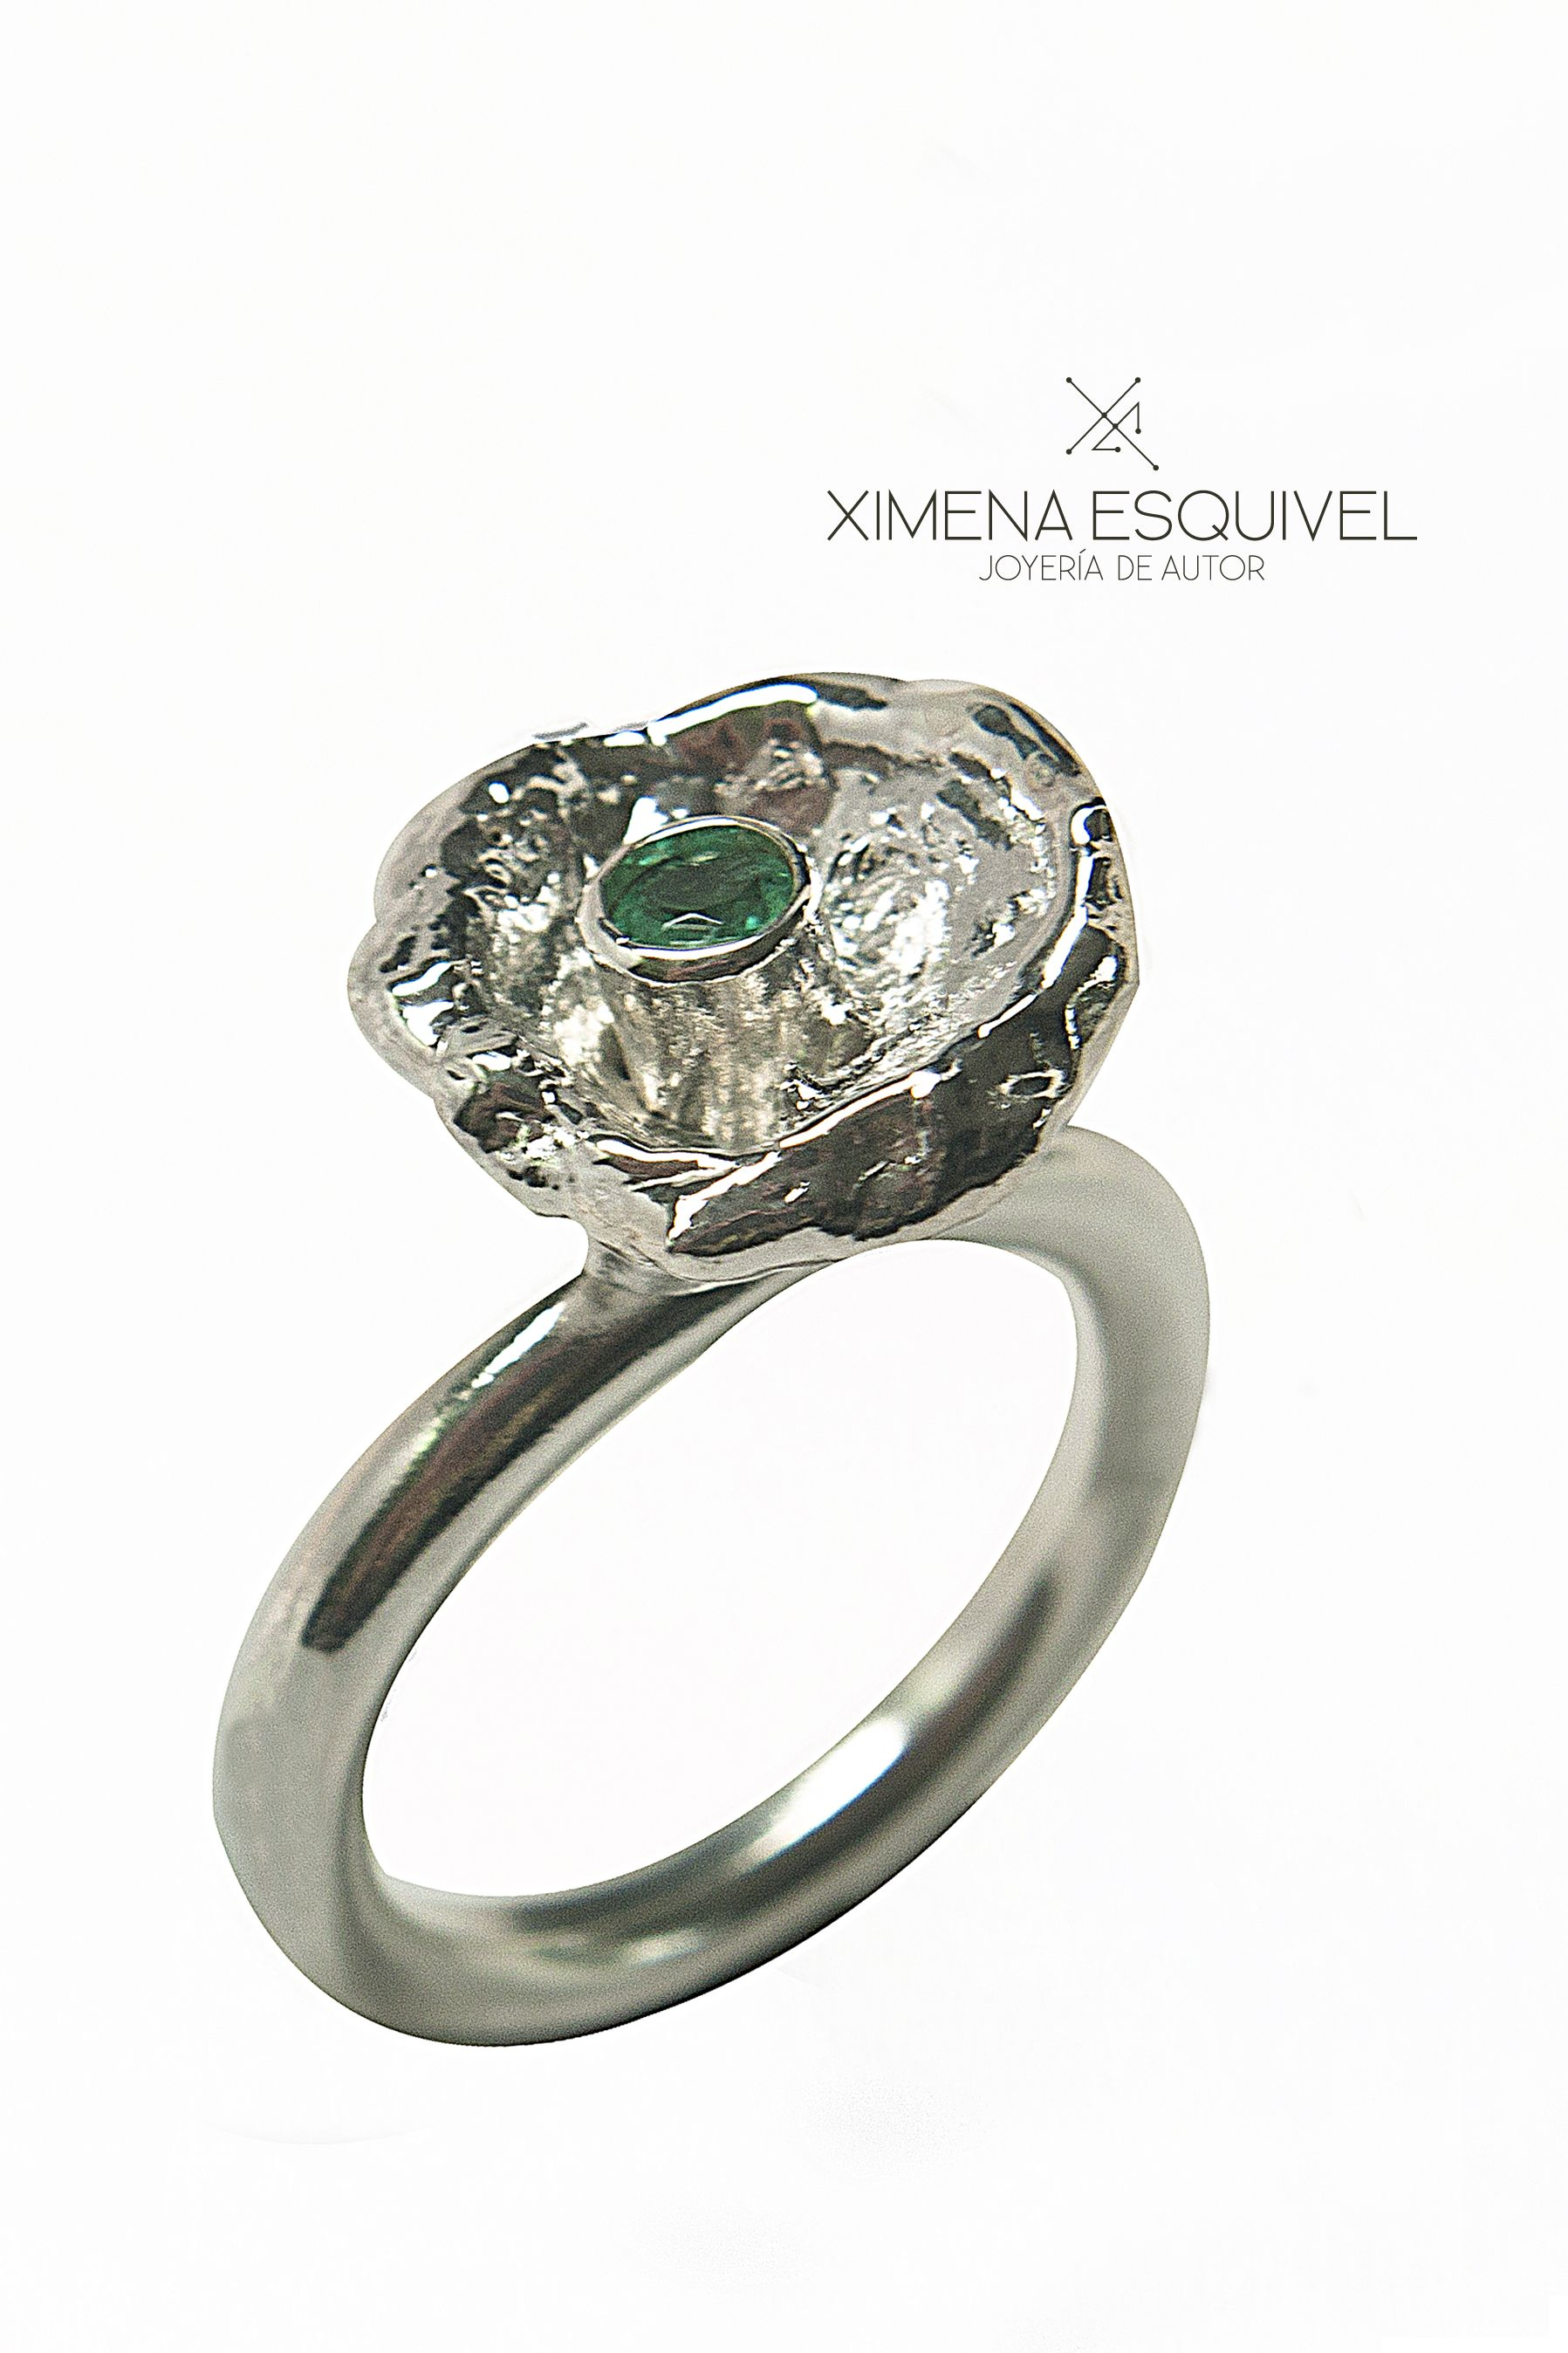 Silver ring with emerald. Ximena Esquivel